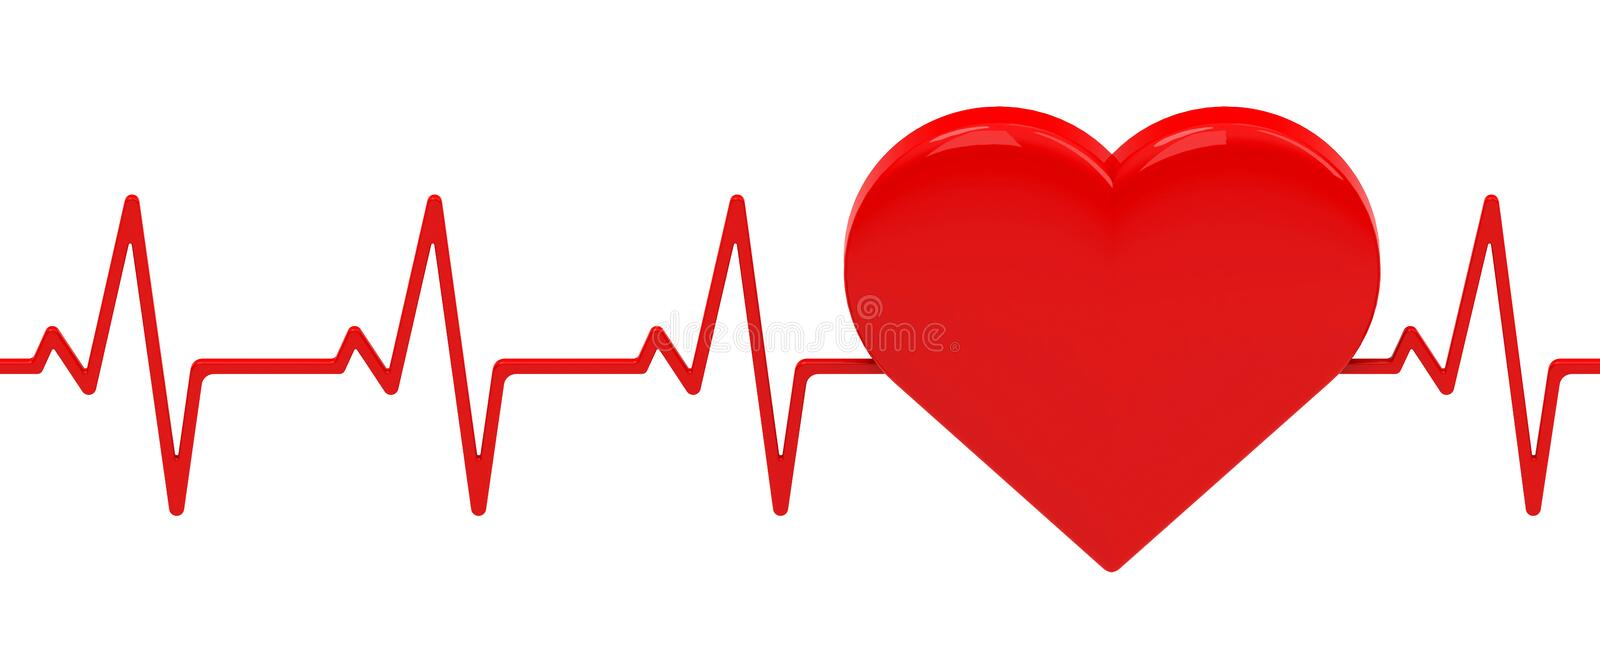 The heartbeat royalty free illustration